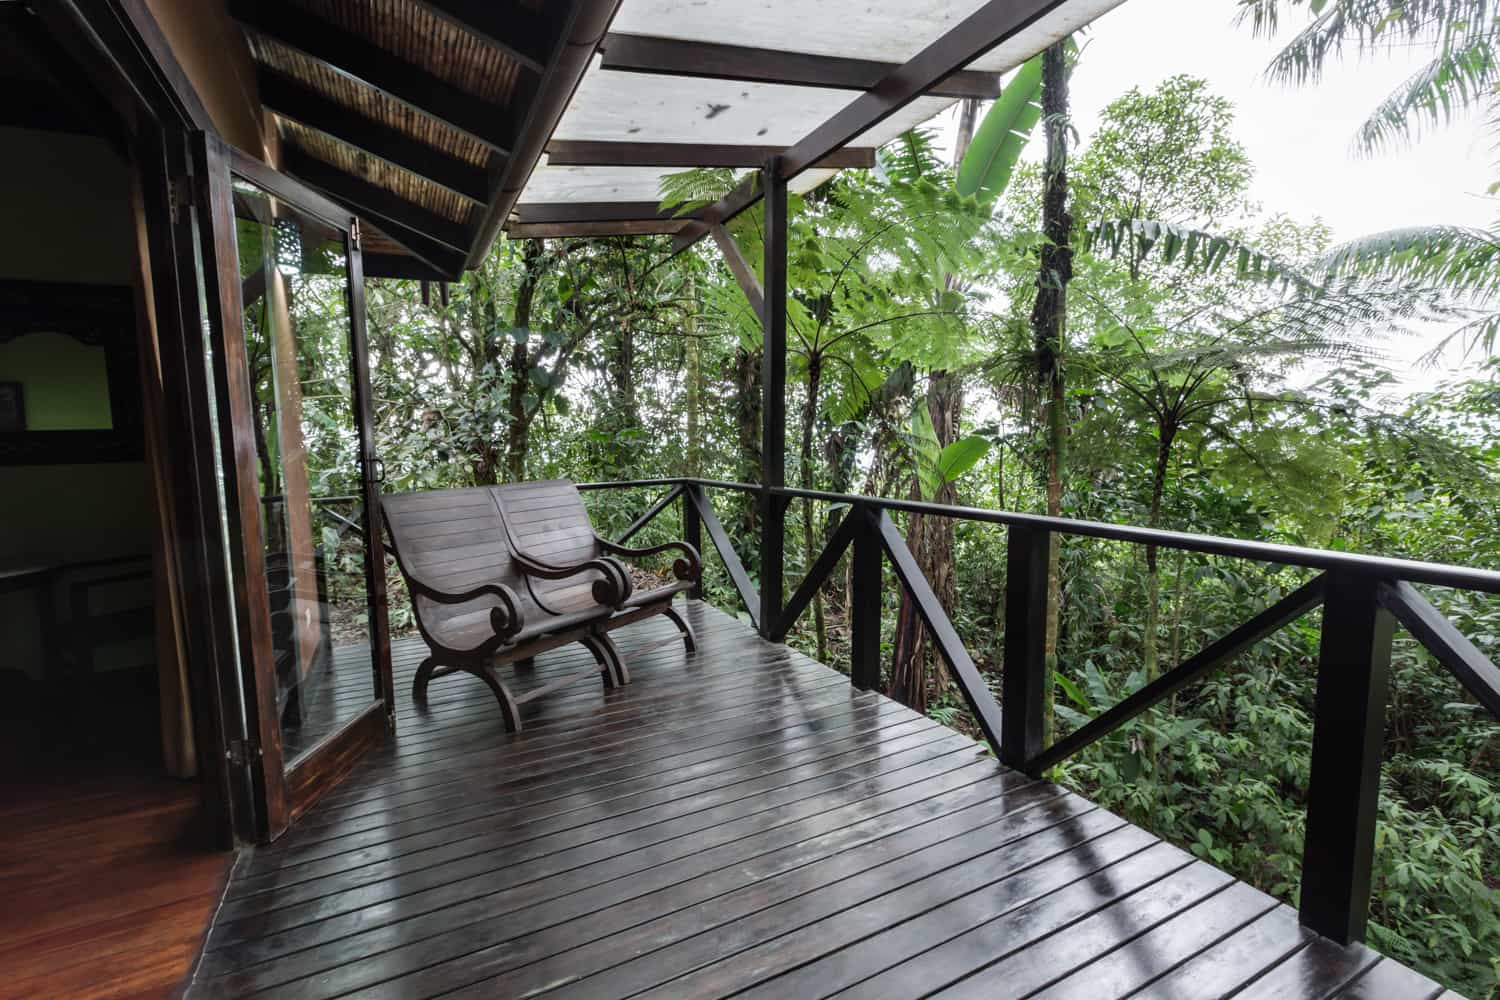 Chairs on wood deck surrounded by rainforest at boutique wedding destination in Costa Rica.